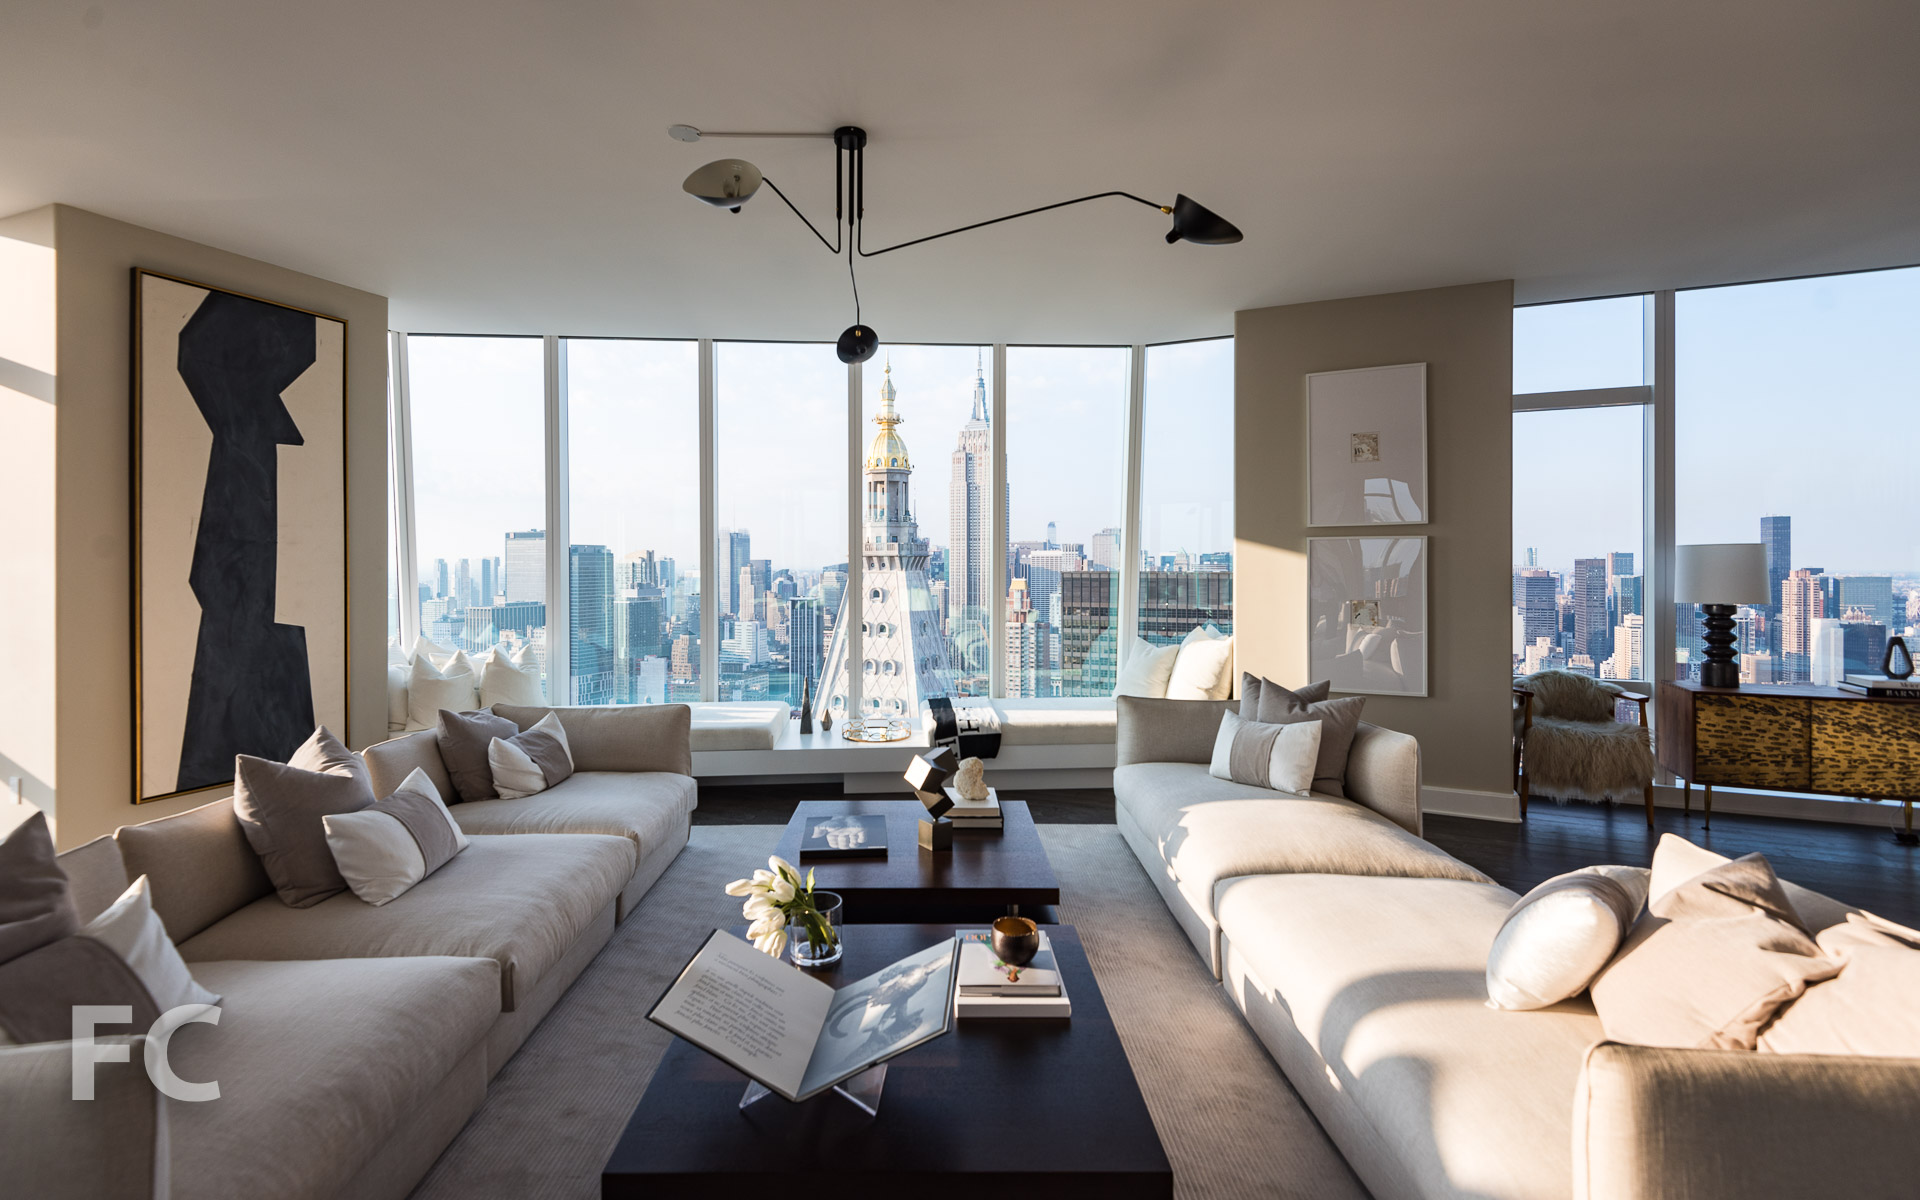 Living room views of the Midtown skyline.